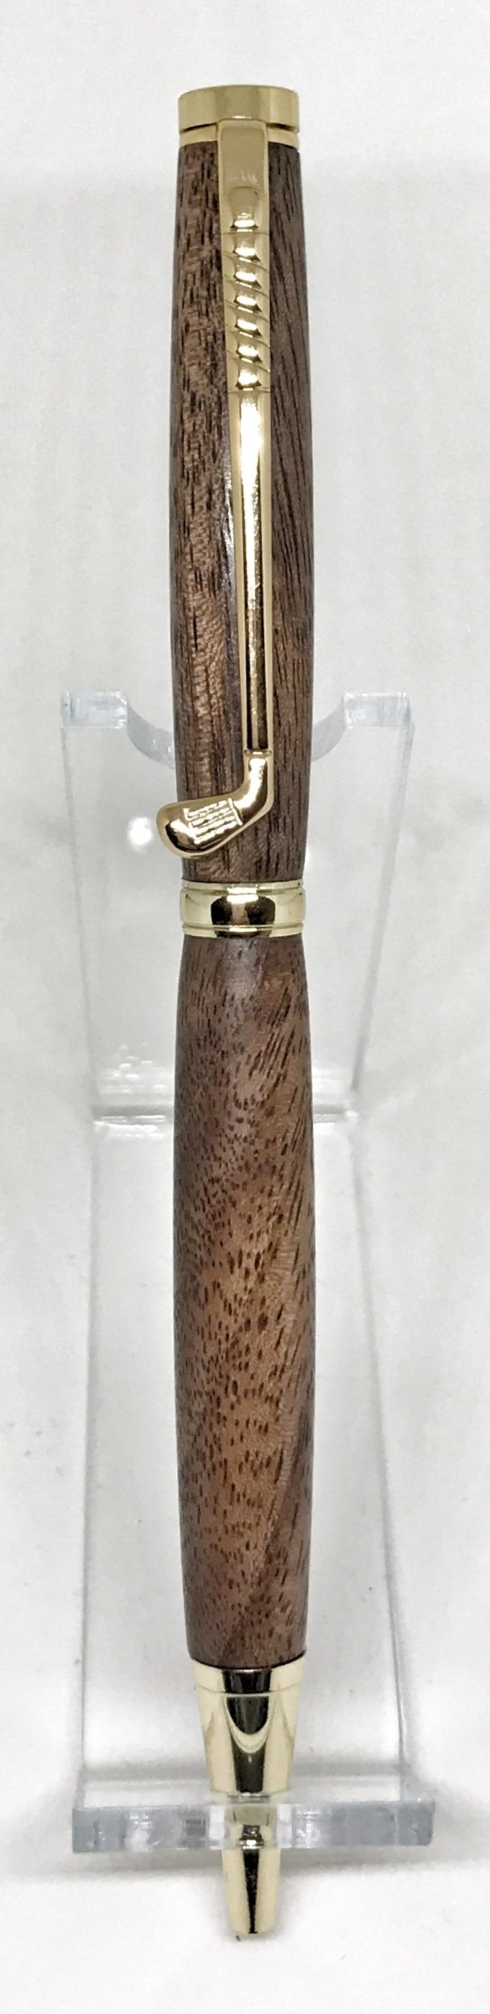 $60.00 MACHIN GOLF PEN WALNUT